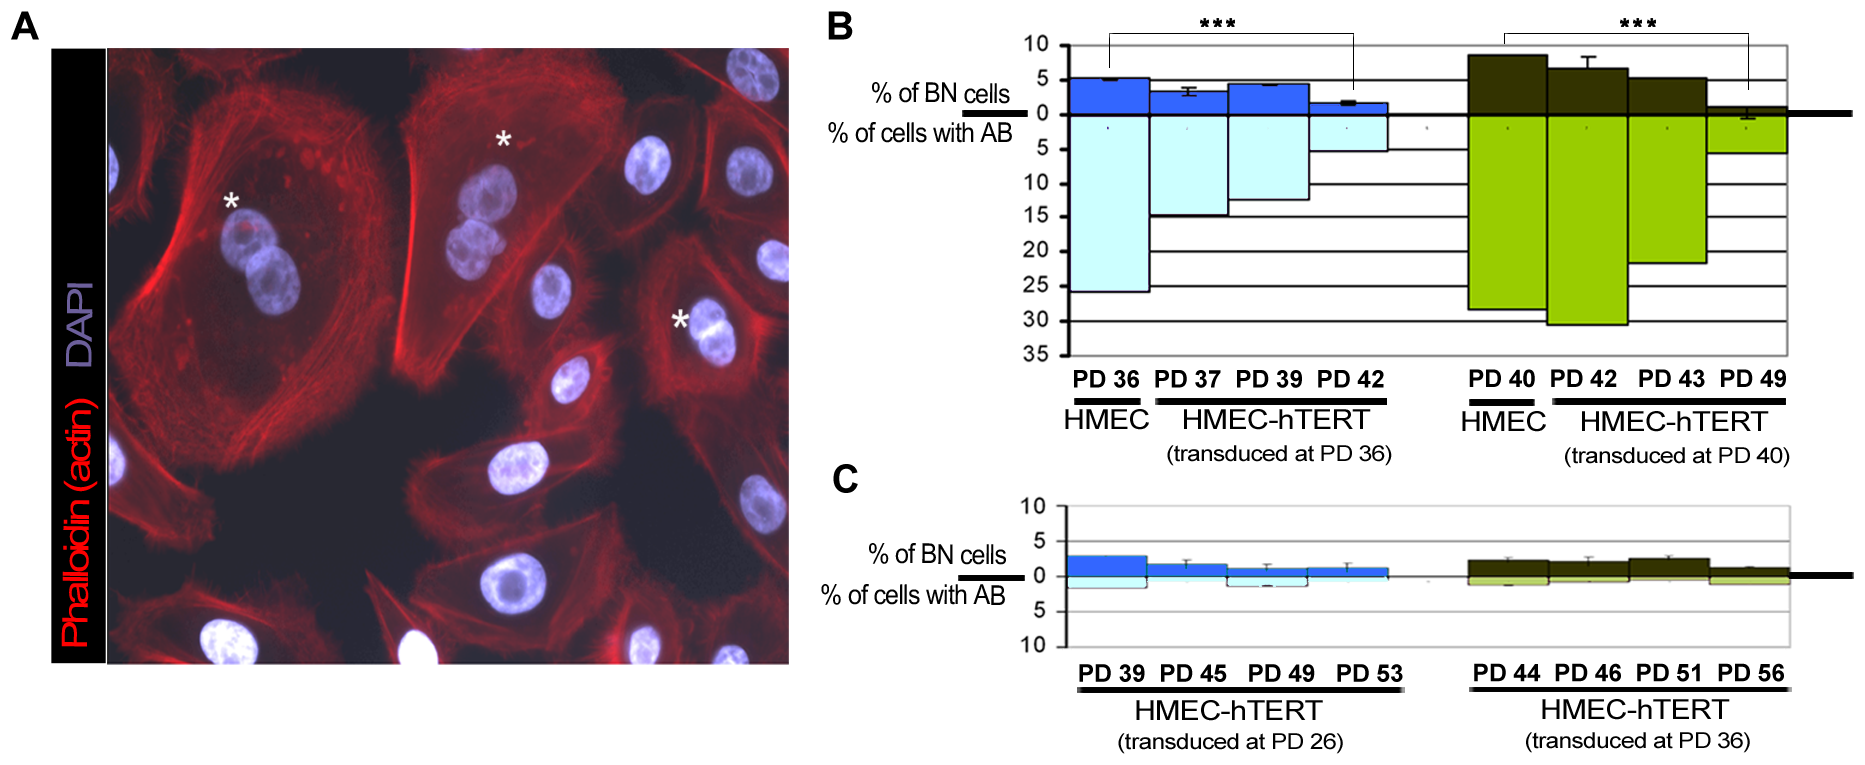 Quantification of anaphase bridges and binucleates in non-transduced and hTERT-transduced HMECs.